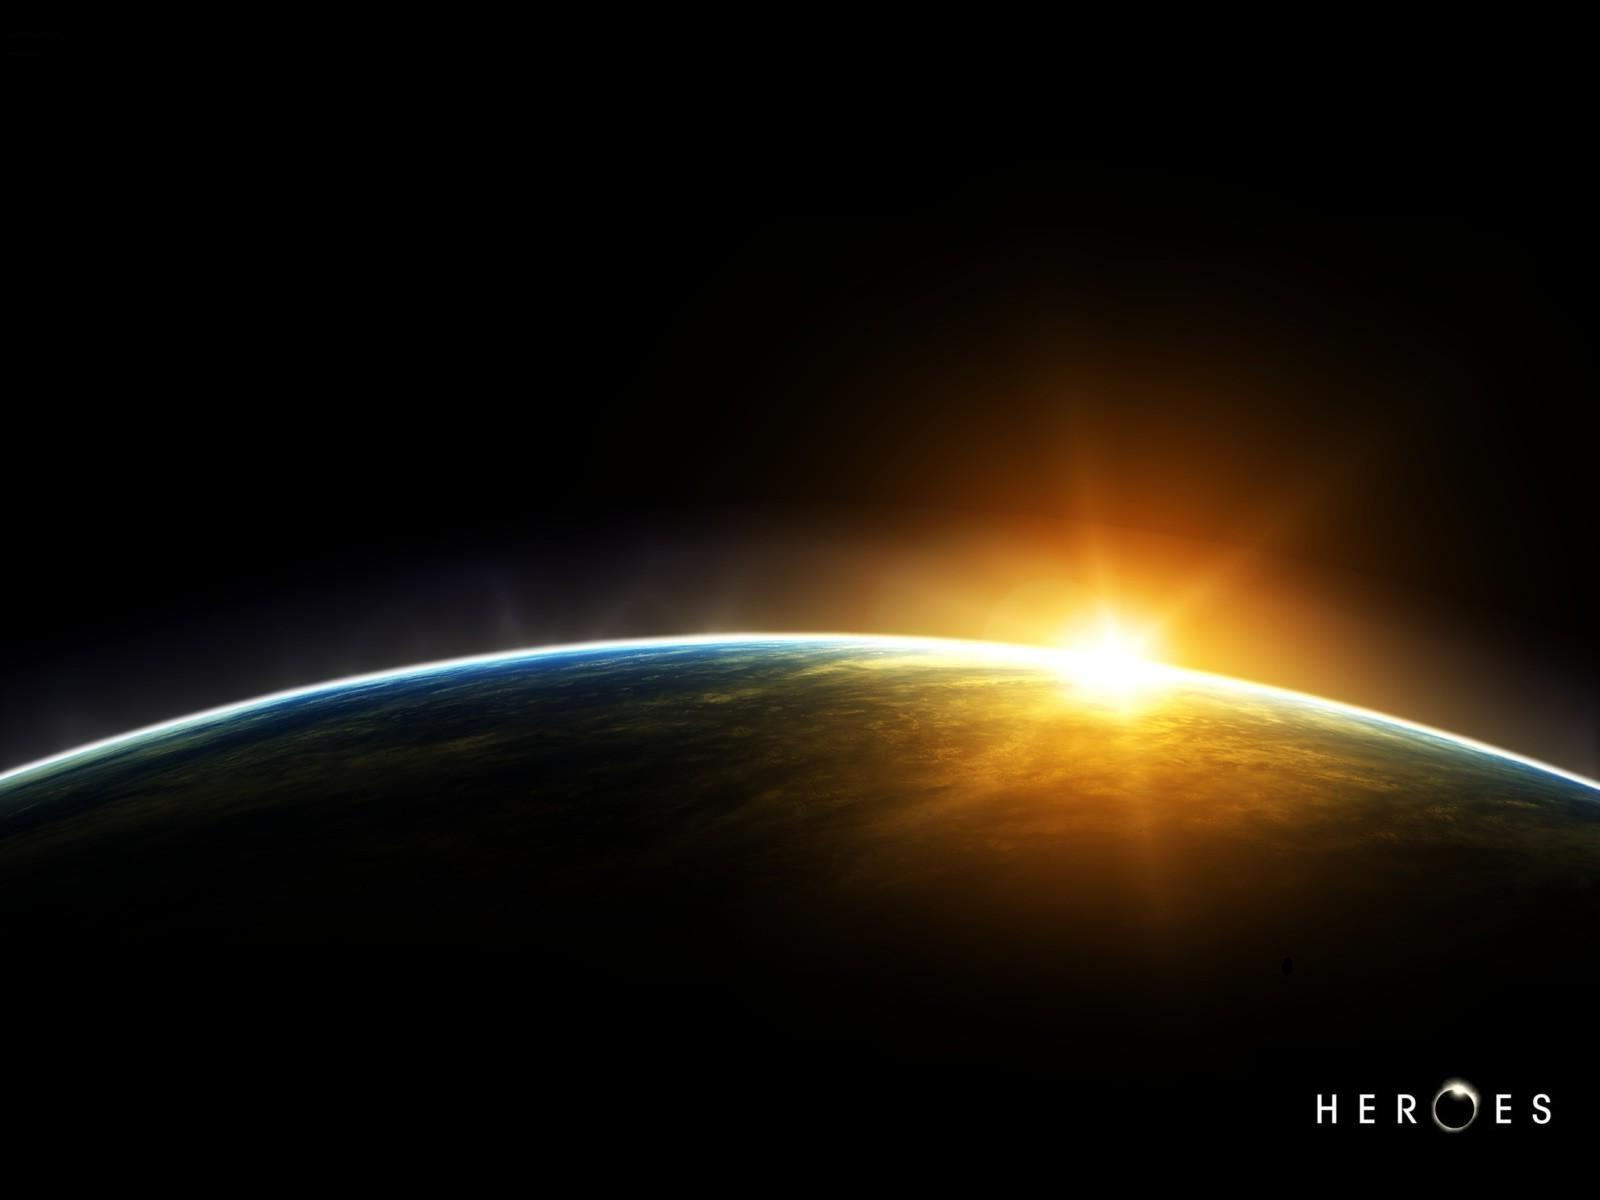 Heroes (TV Series) Earth HD Wallpaper